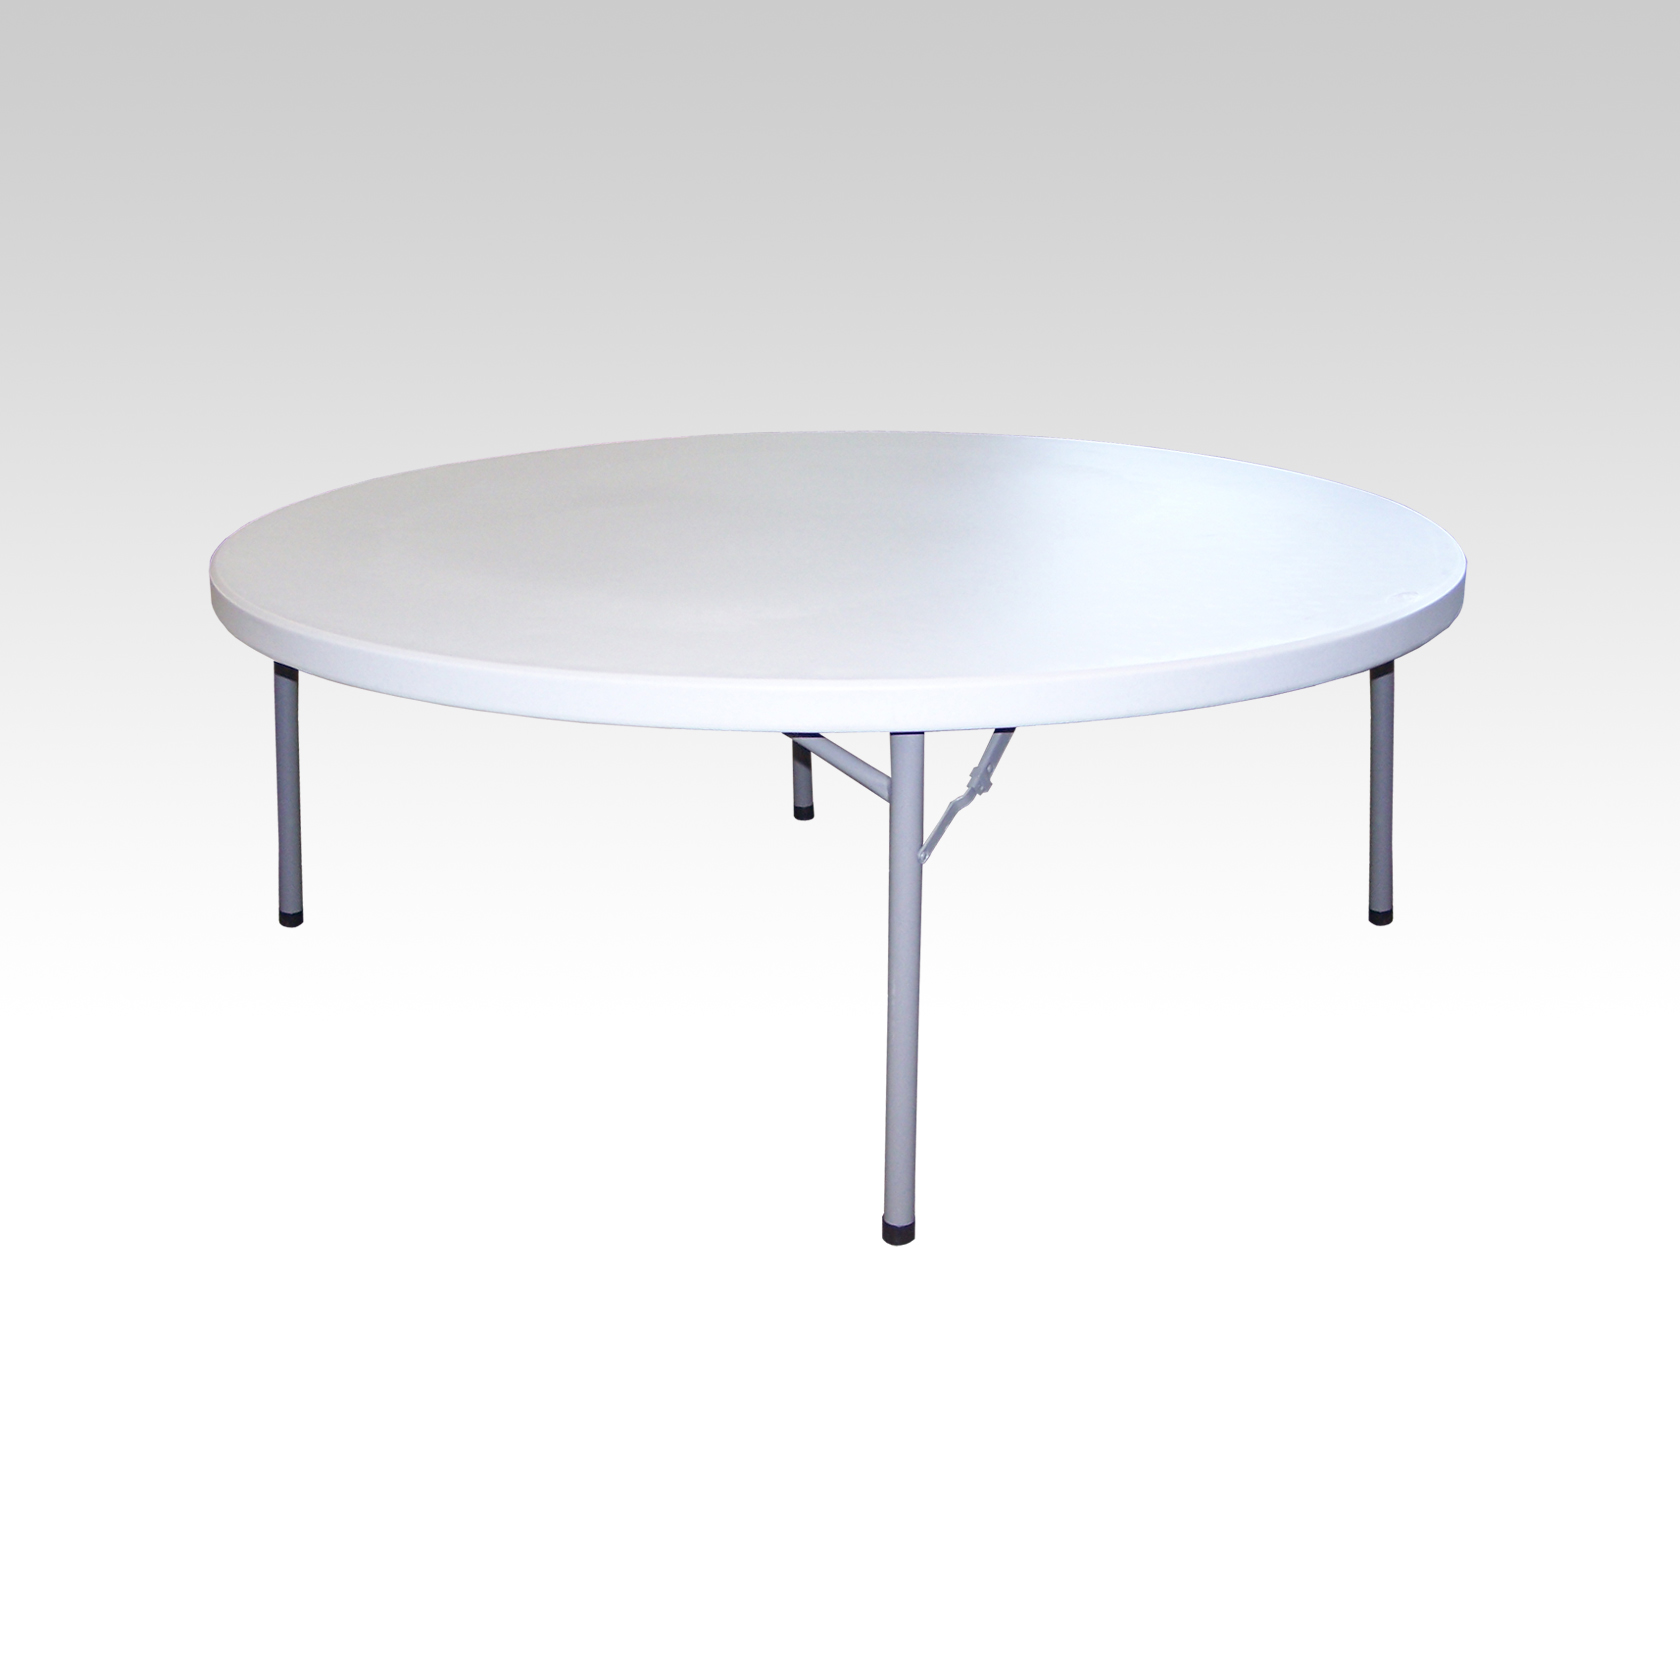 granite amazon folding round com lifetime white banquet outdoor garden feet dp table